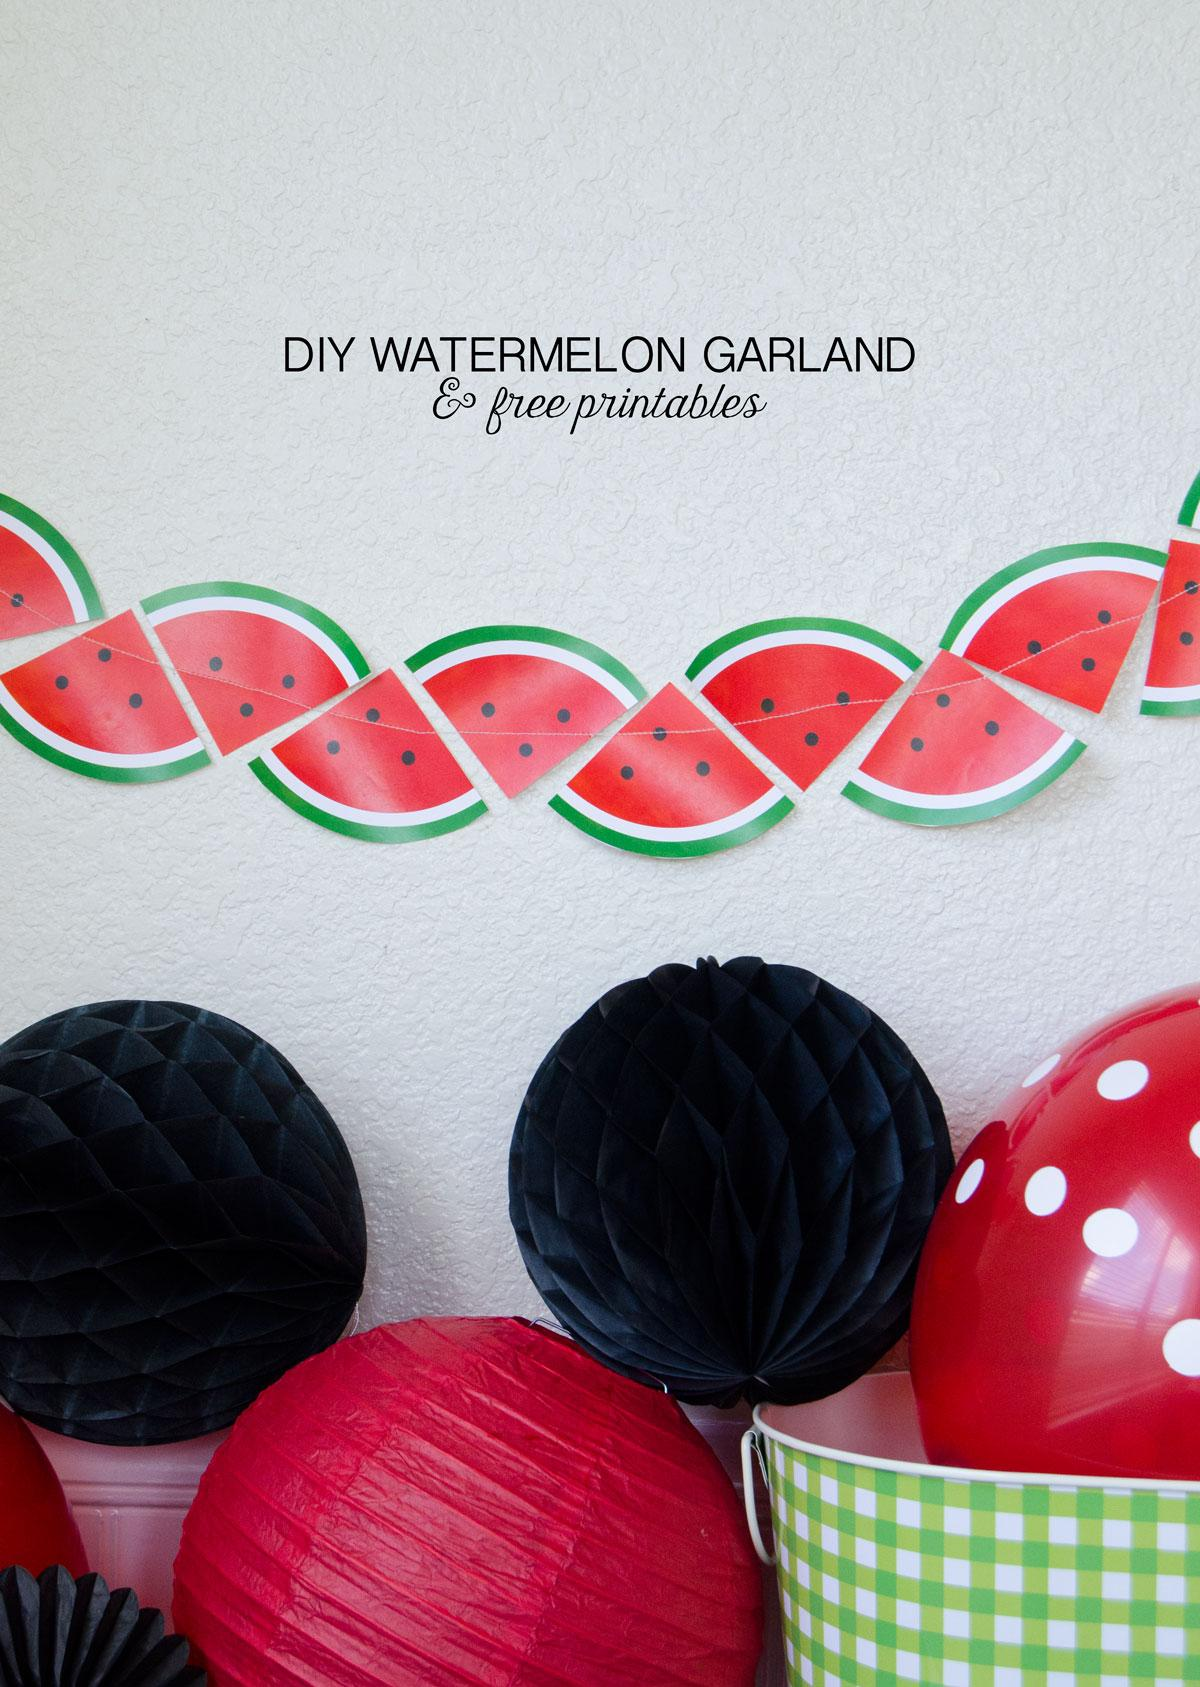 DIY-Watermelon-Garland2